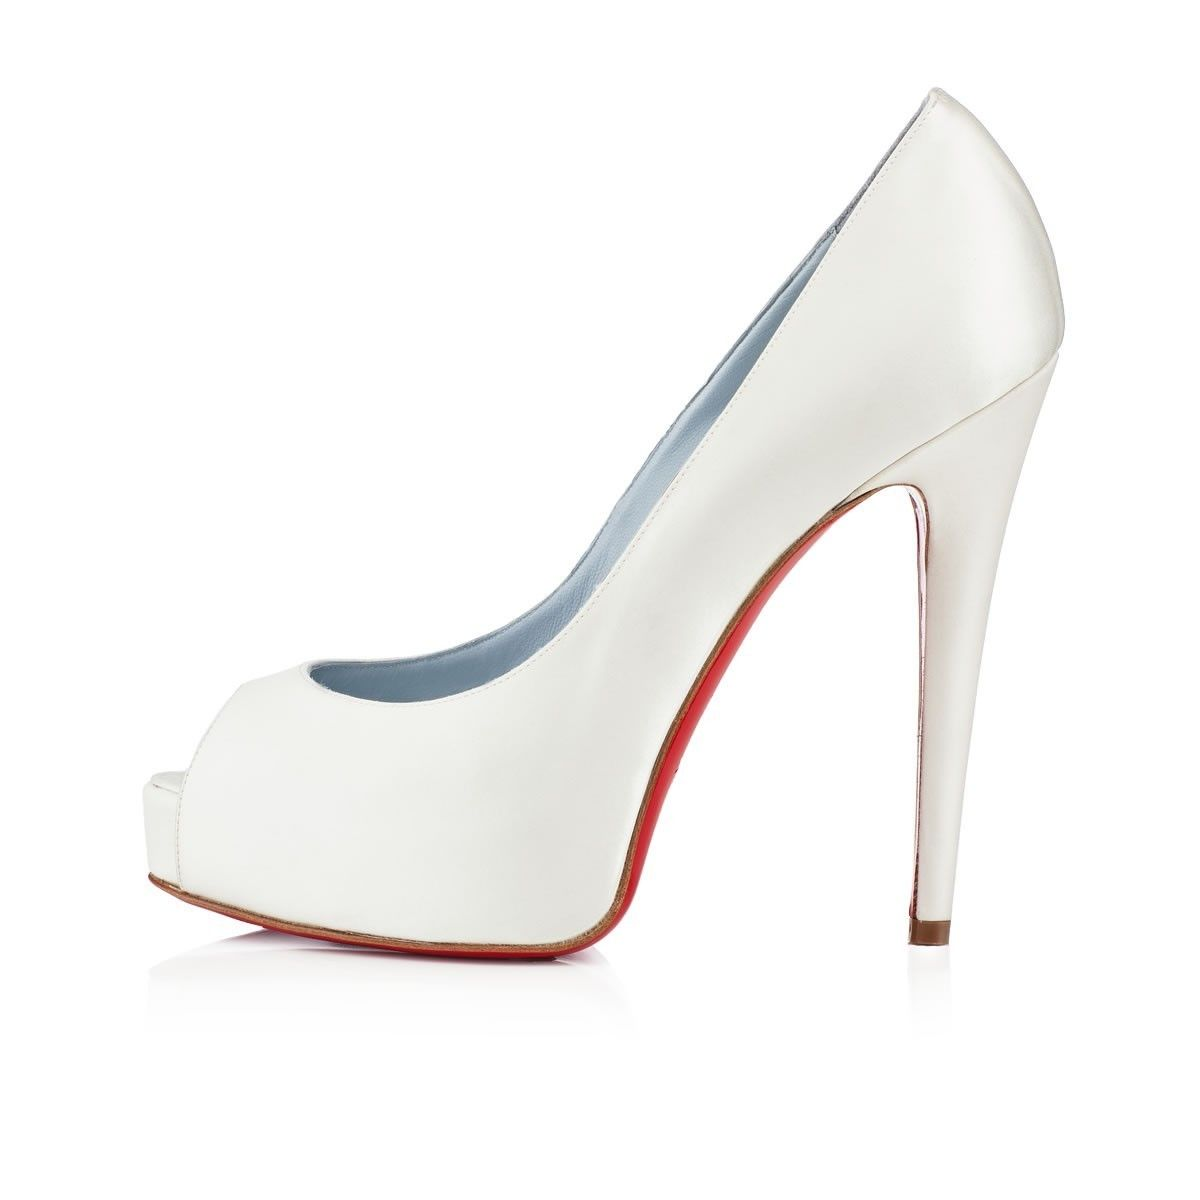 check-out aaedd 3c75a Chaussure Louboutin Pas Cher Escarpins Vendome 120mm Blanc ...